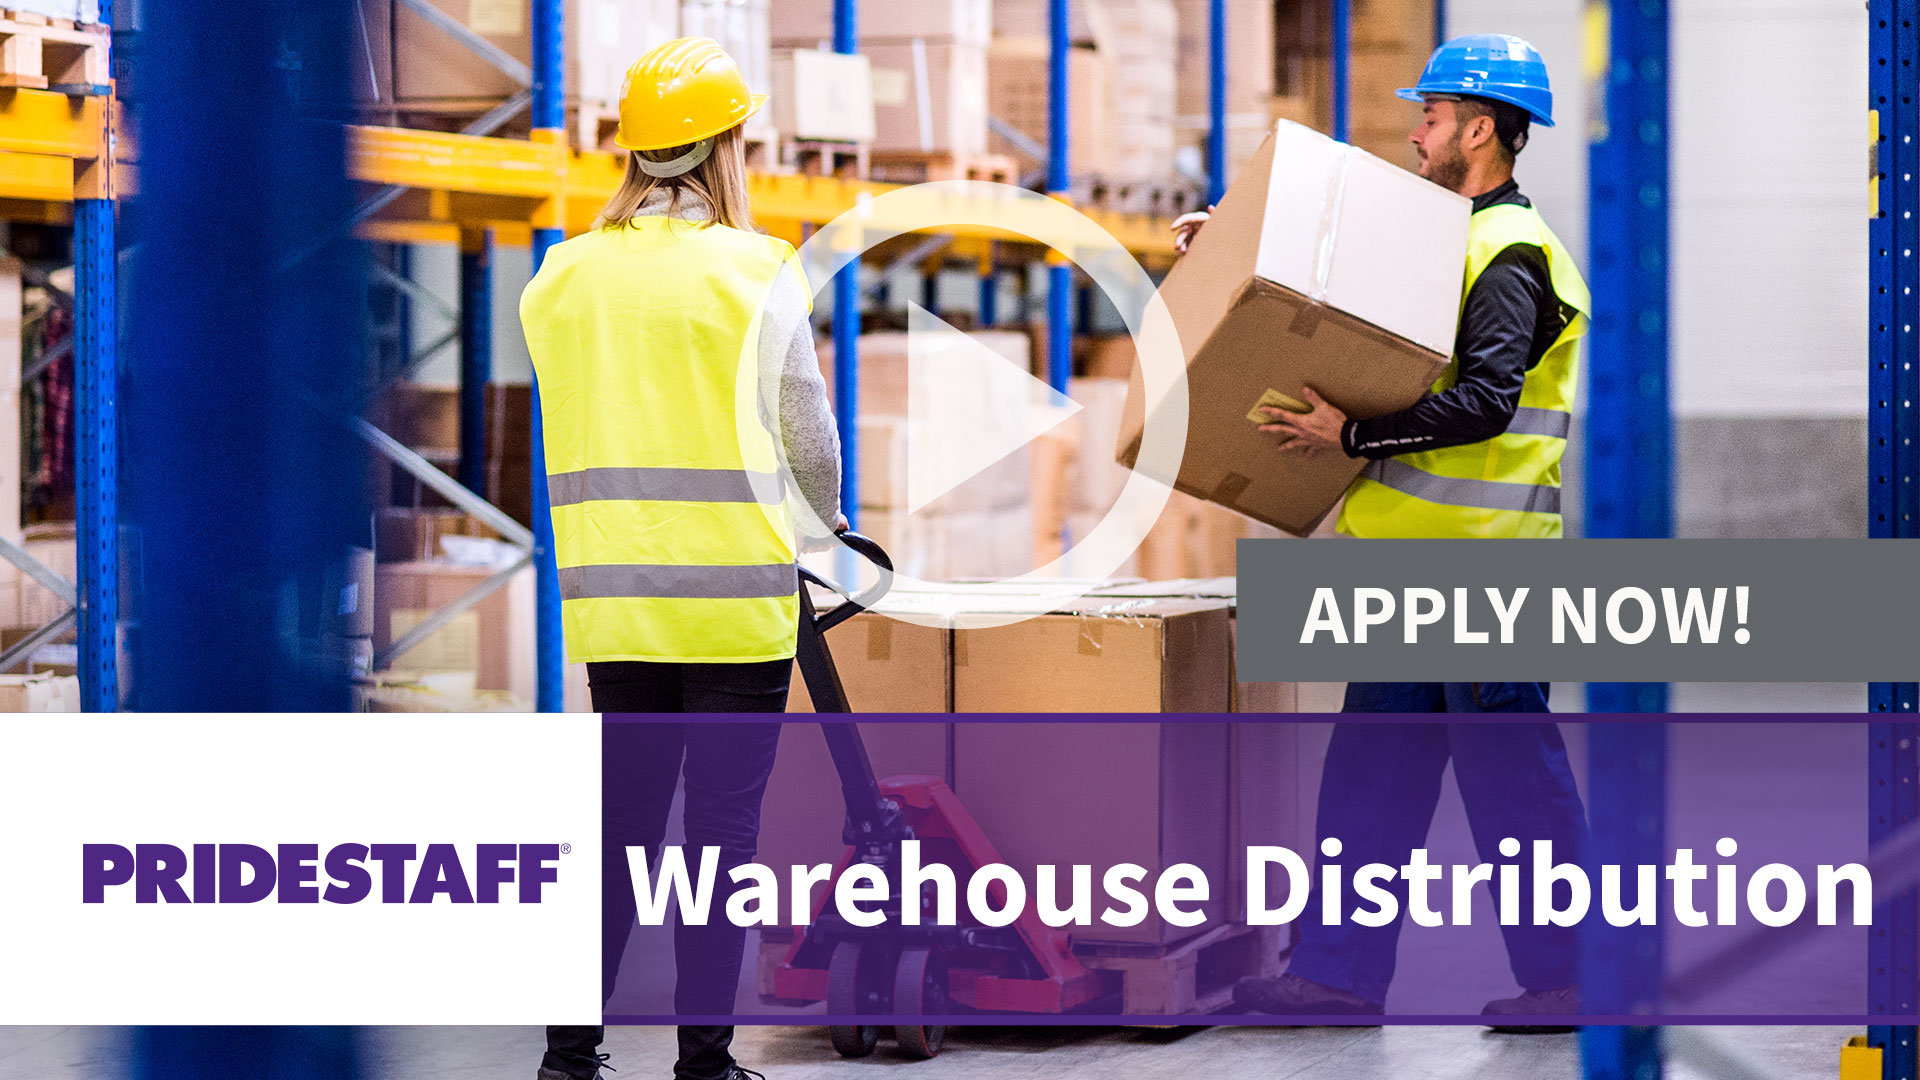 Watch our careers video for available job opening Warehouse Distribution in TBD, TBD